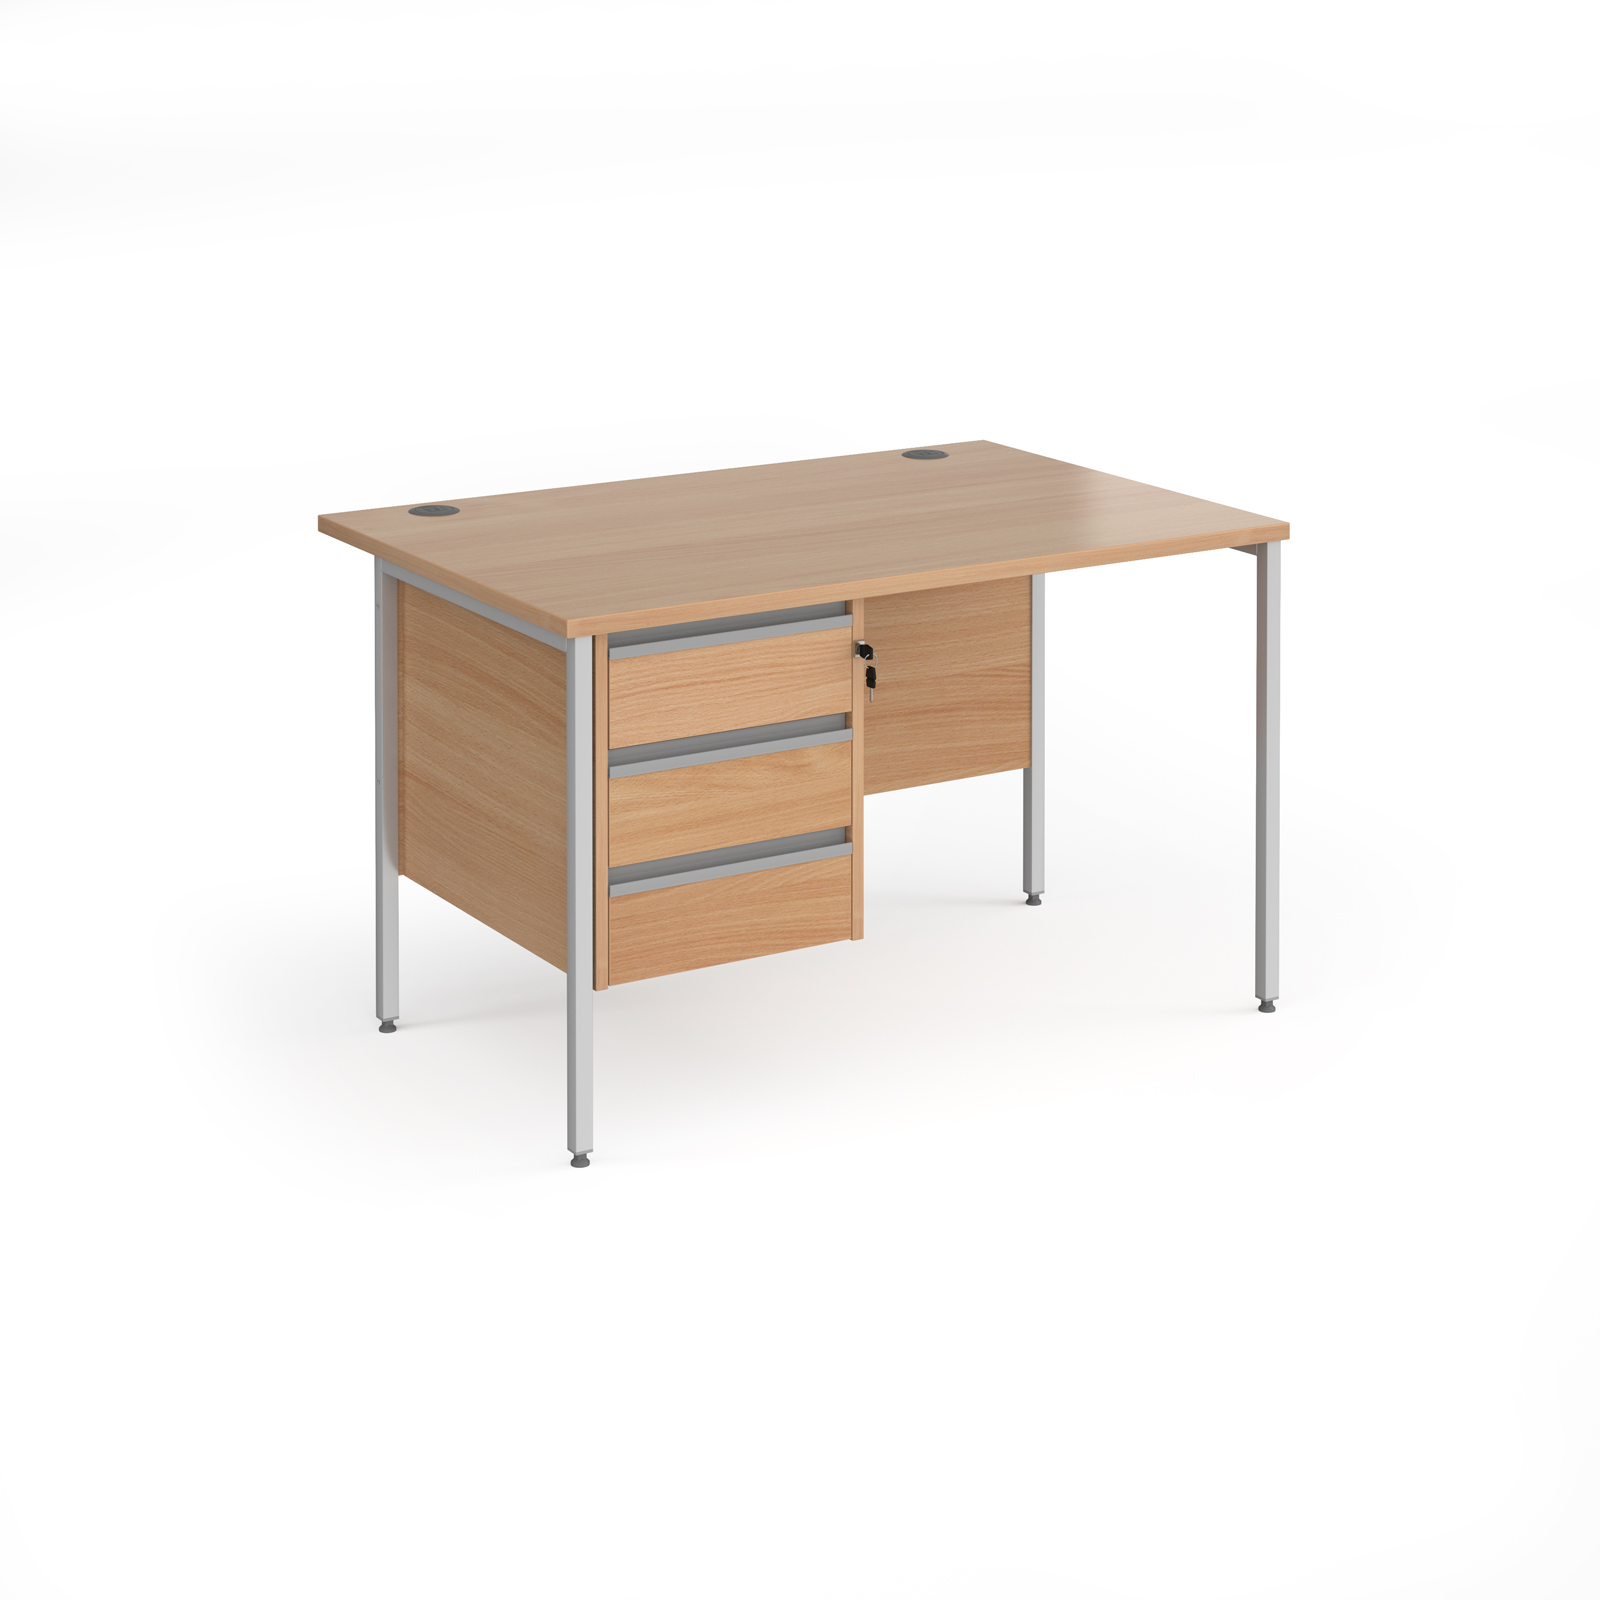 Contract 25 straight desk with 3 drawer pedestal and silver H-Frame leg 1200mm x 800mm - beech top